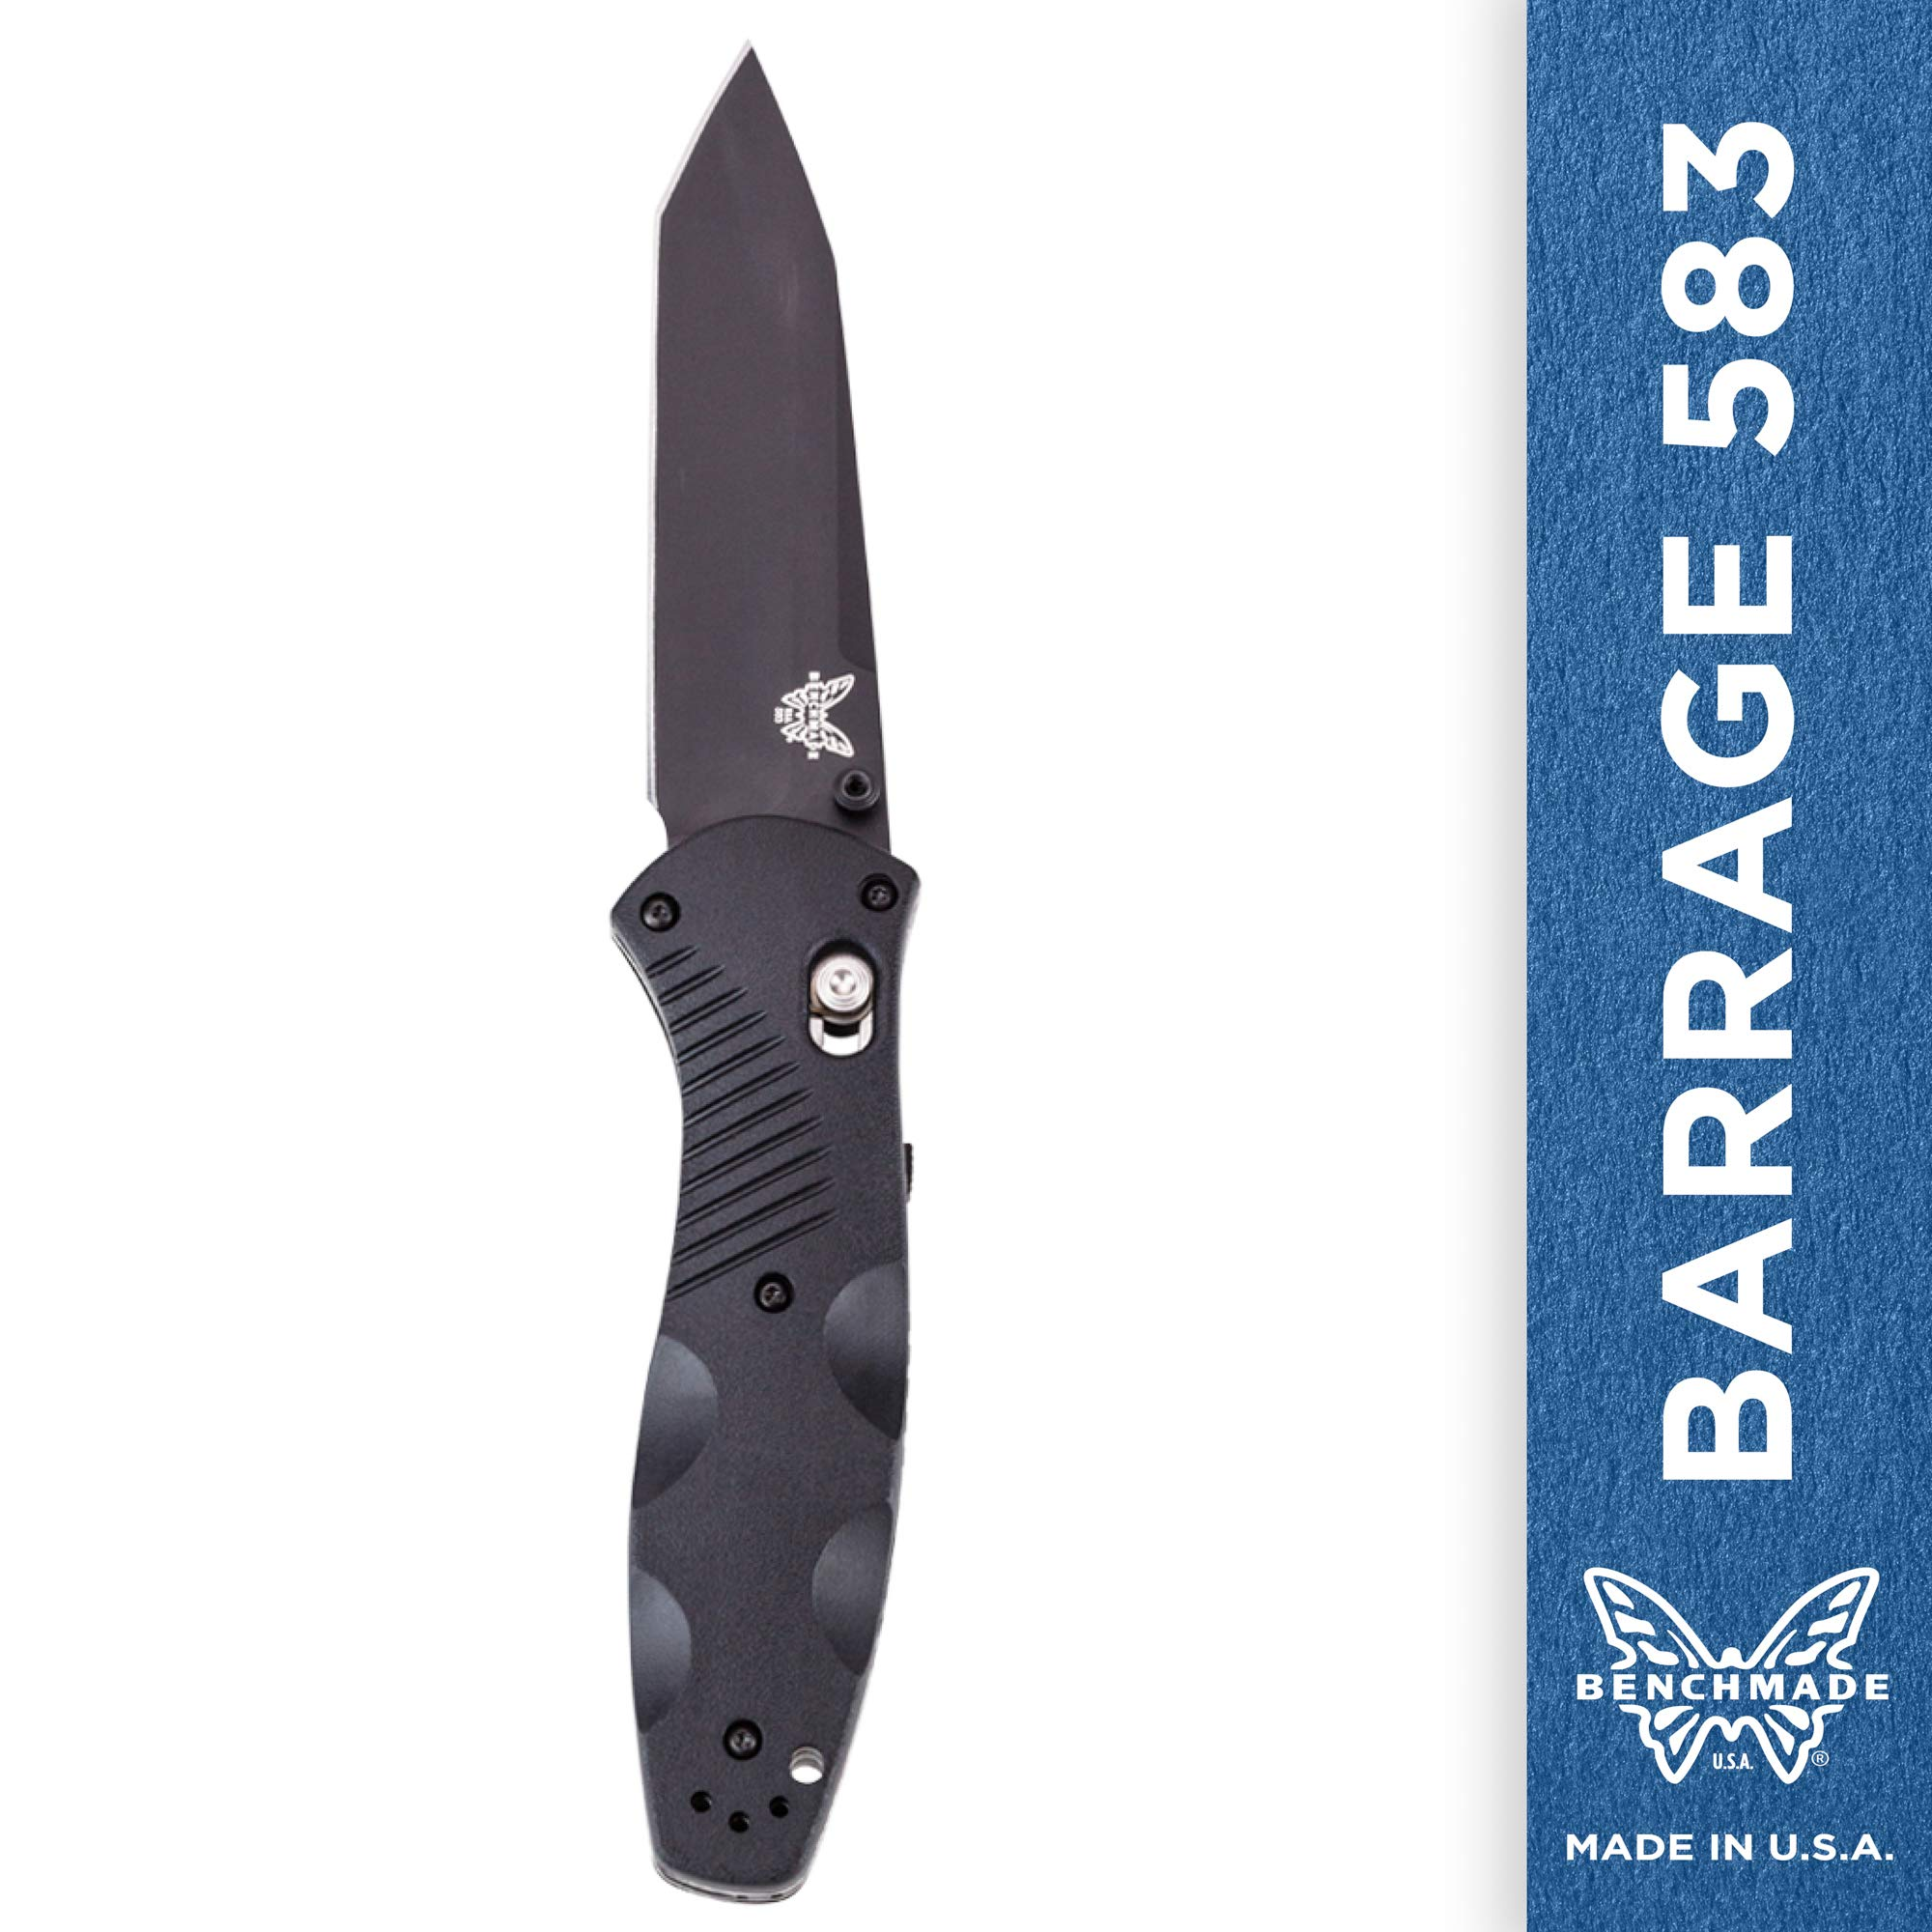 Benchmade - Barrage 583 Knife, Plain Tanto, Coated Finish